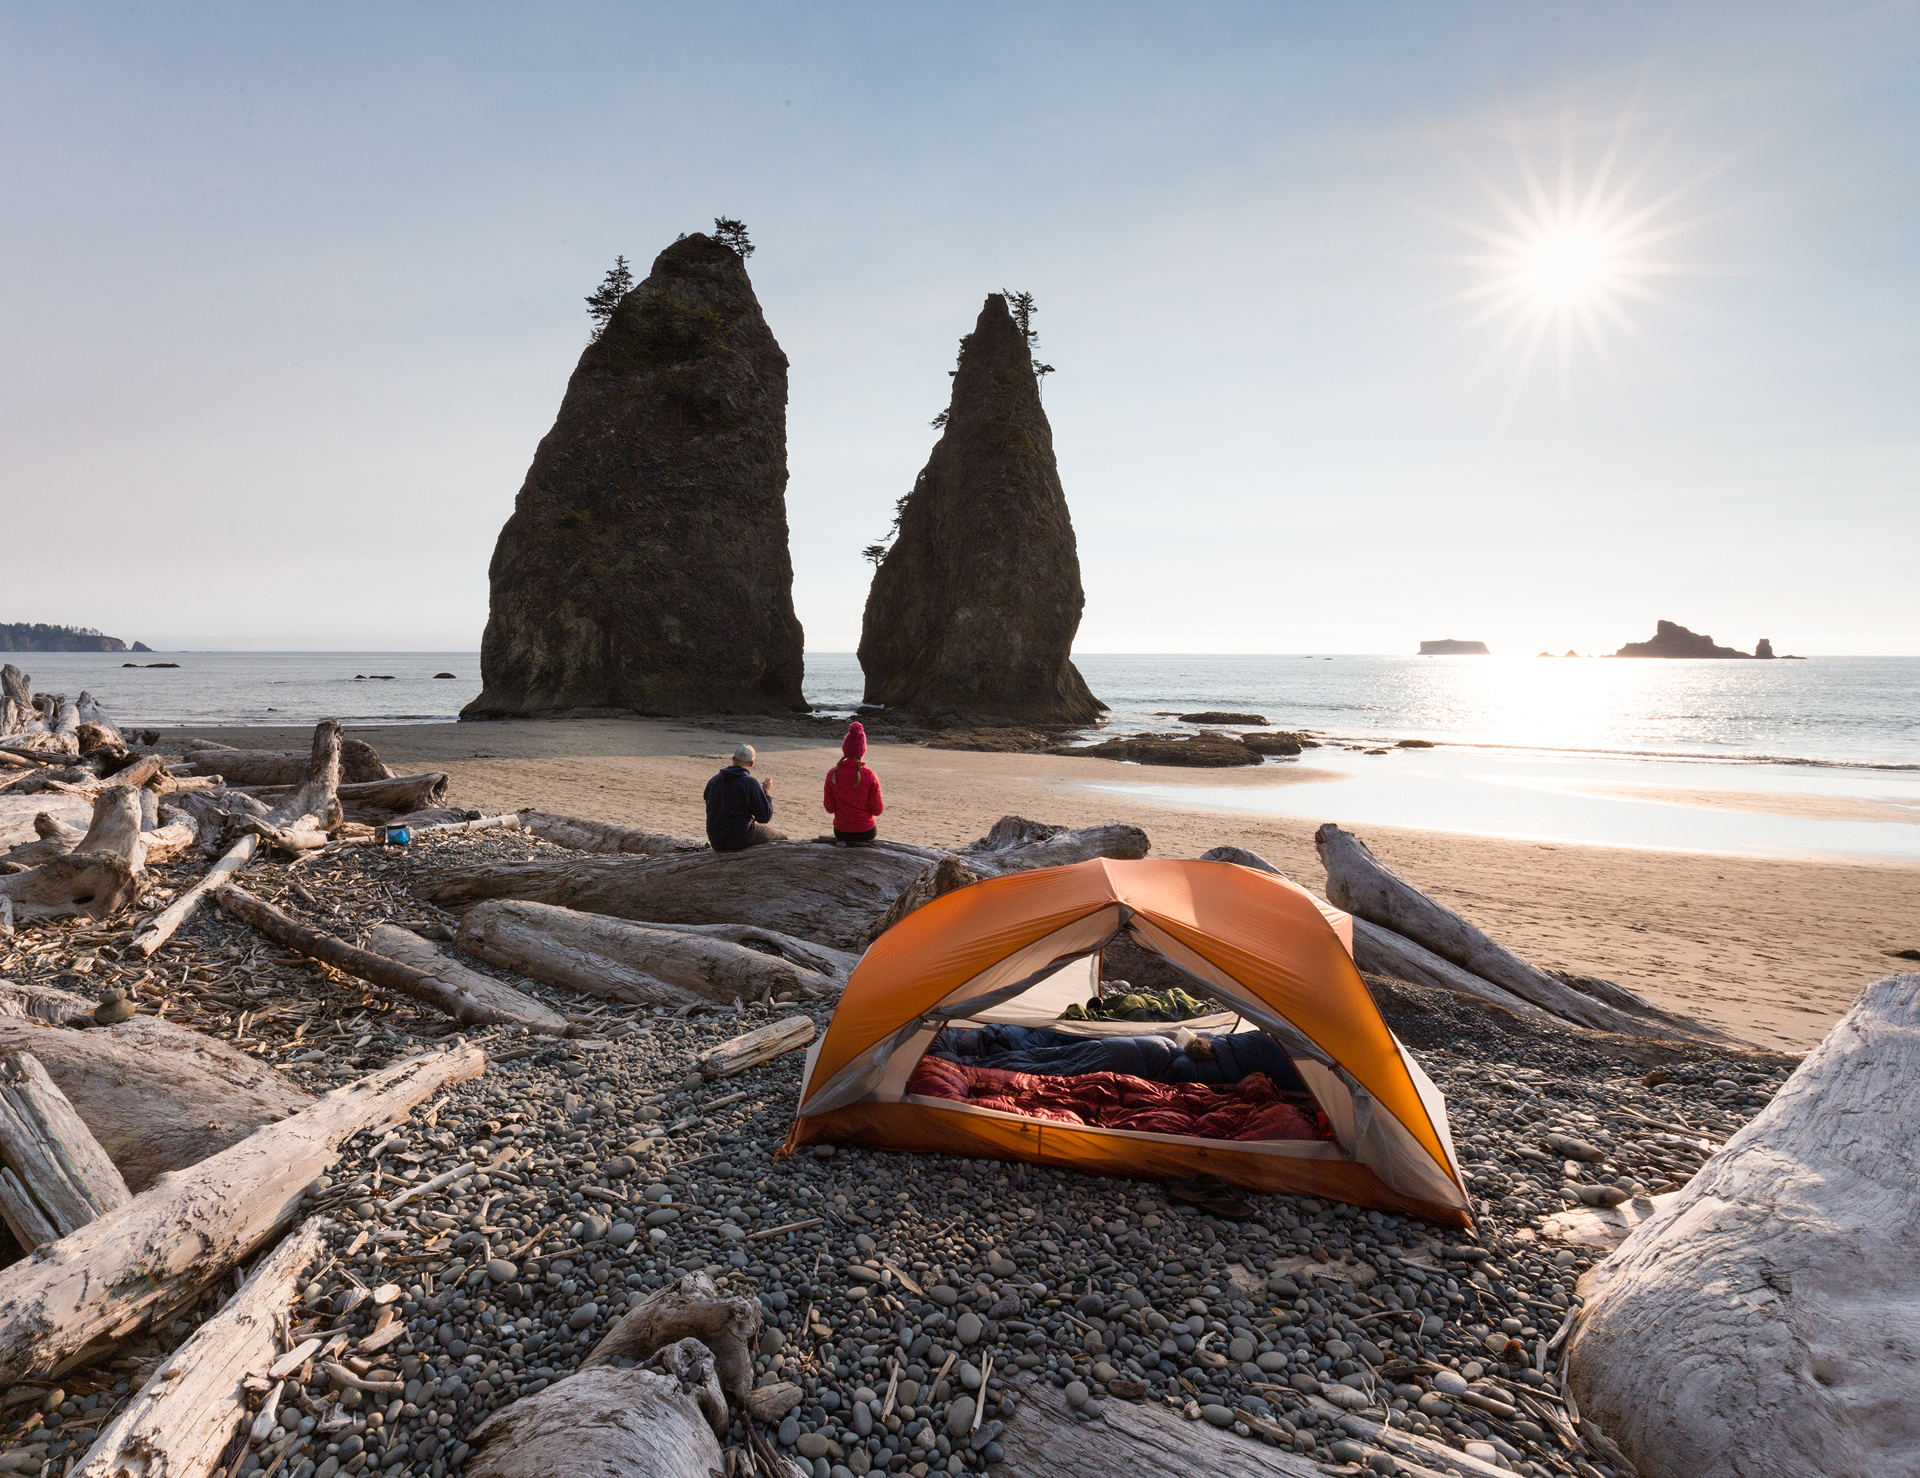 Hole-in-the-Wall Campsite (Olympic National Park, September 2017)